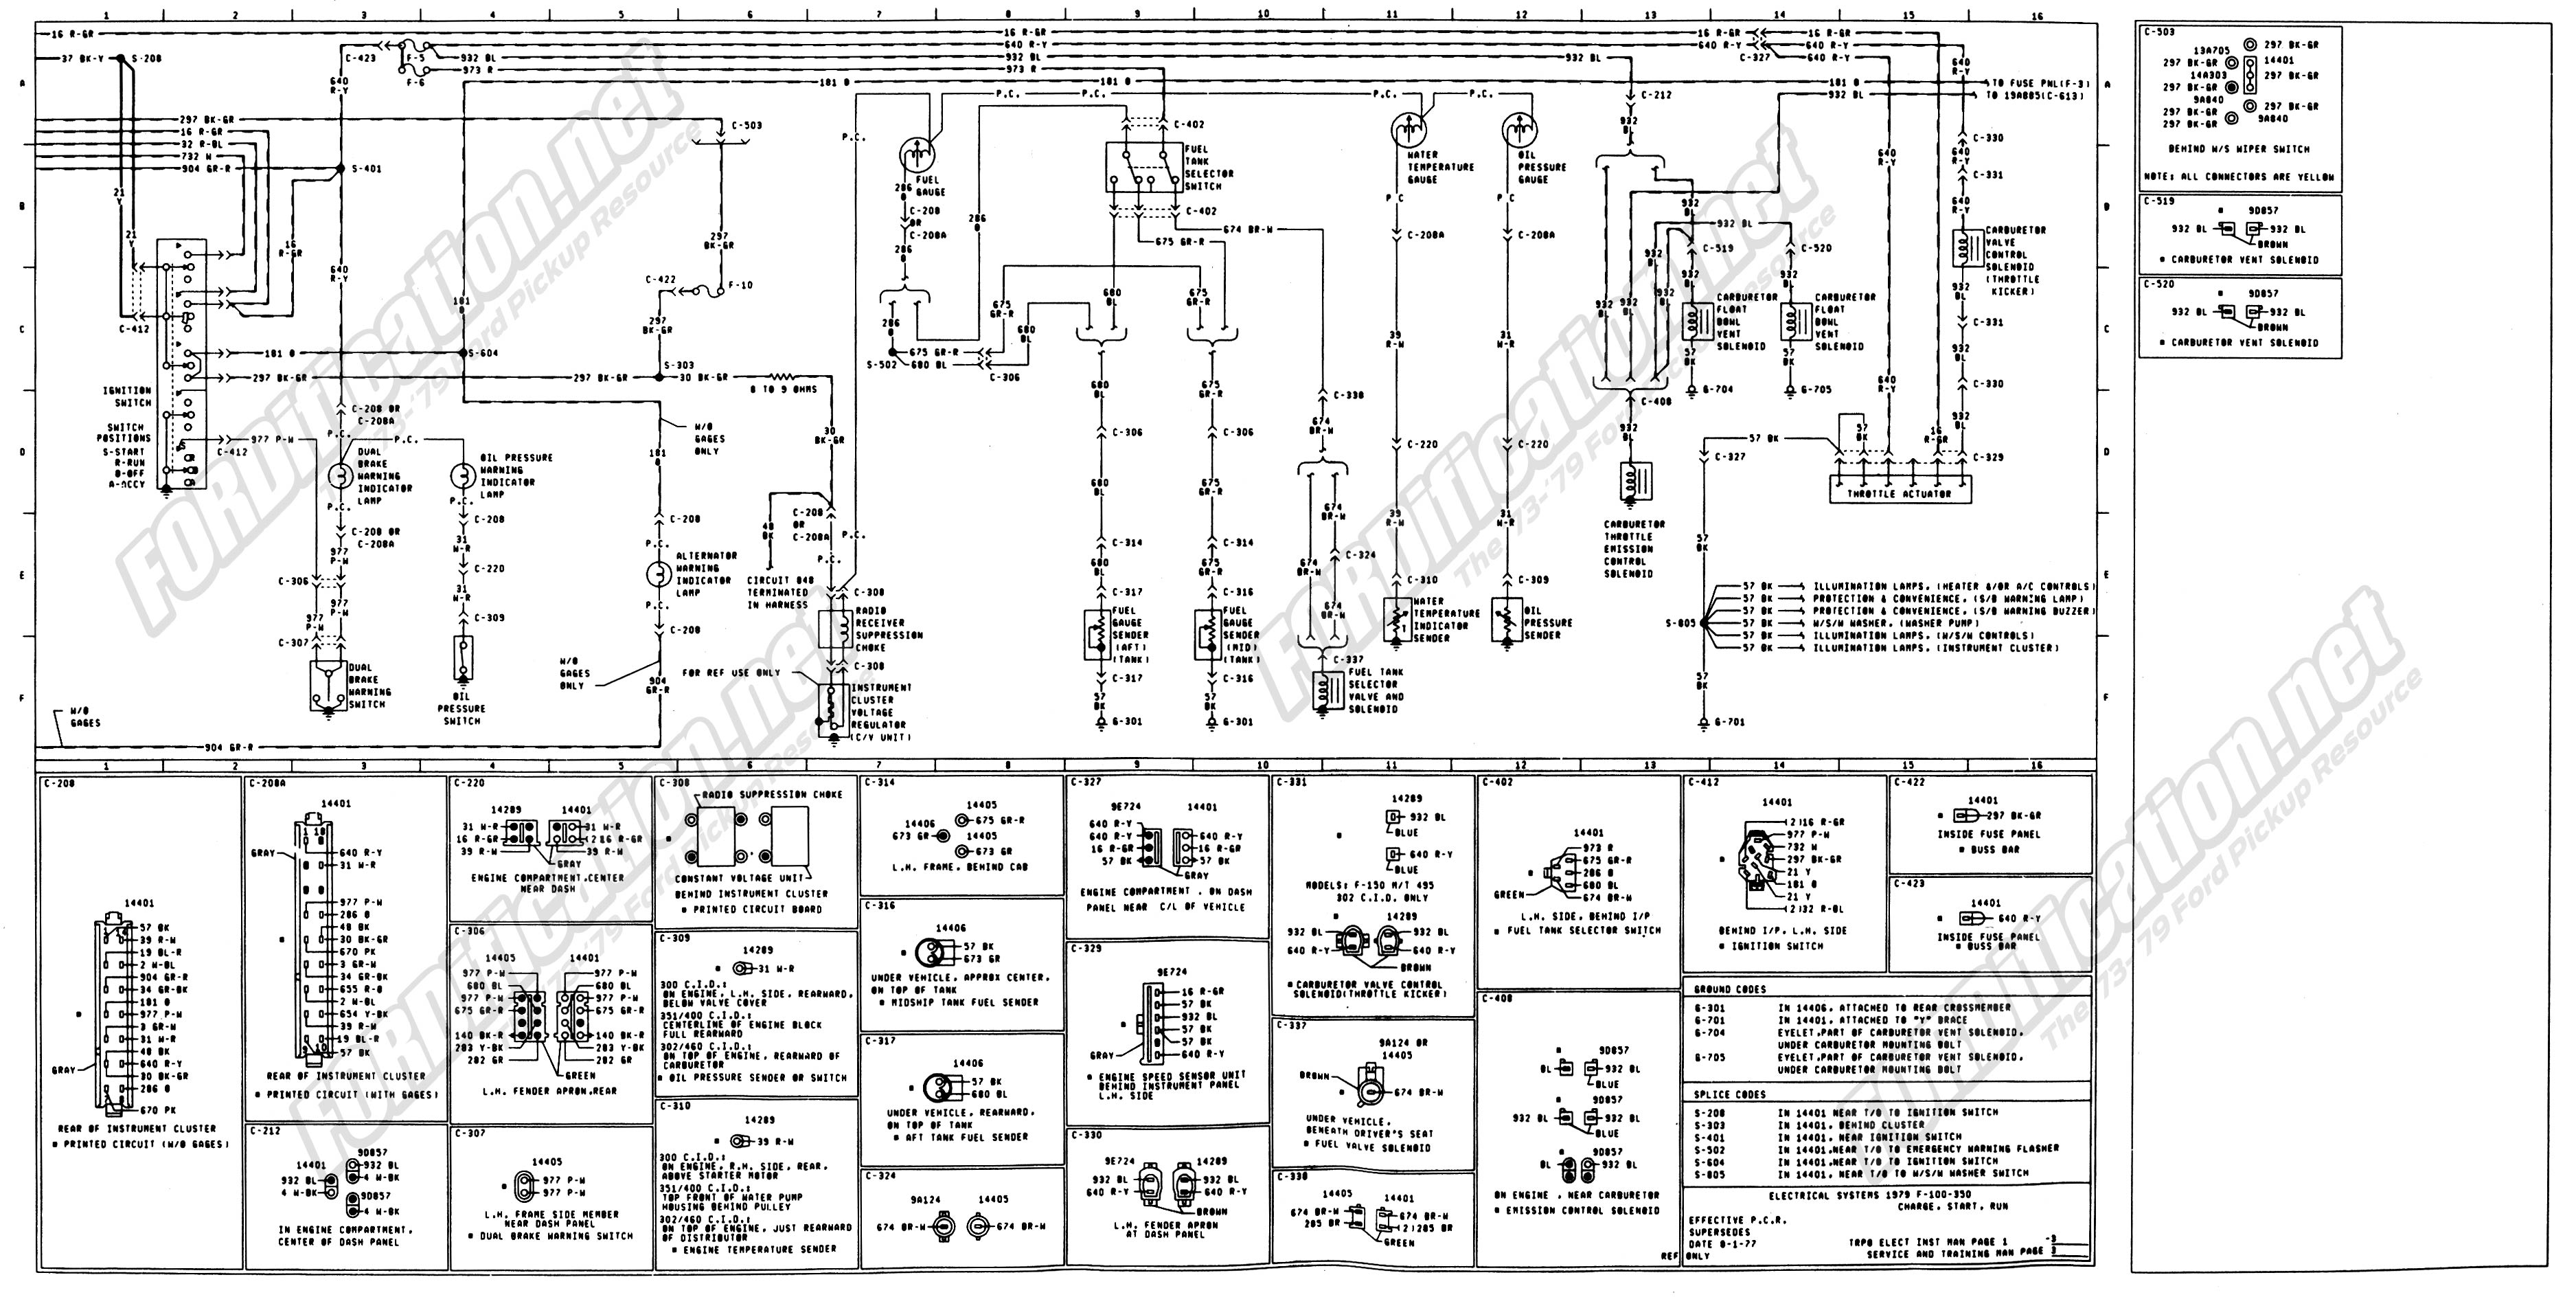 f250 wiring diagram f250 image wiring diagram 2001 ford f350 wiring diagrams 2001 wiring diagrams on f250 wiring diagram